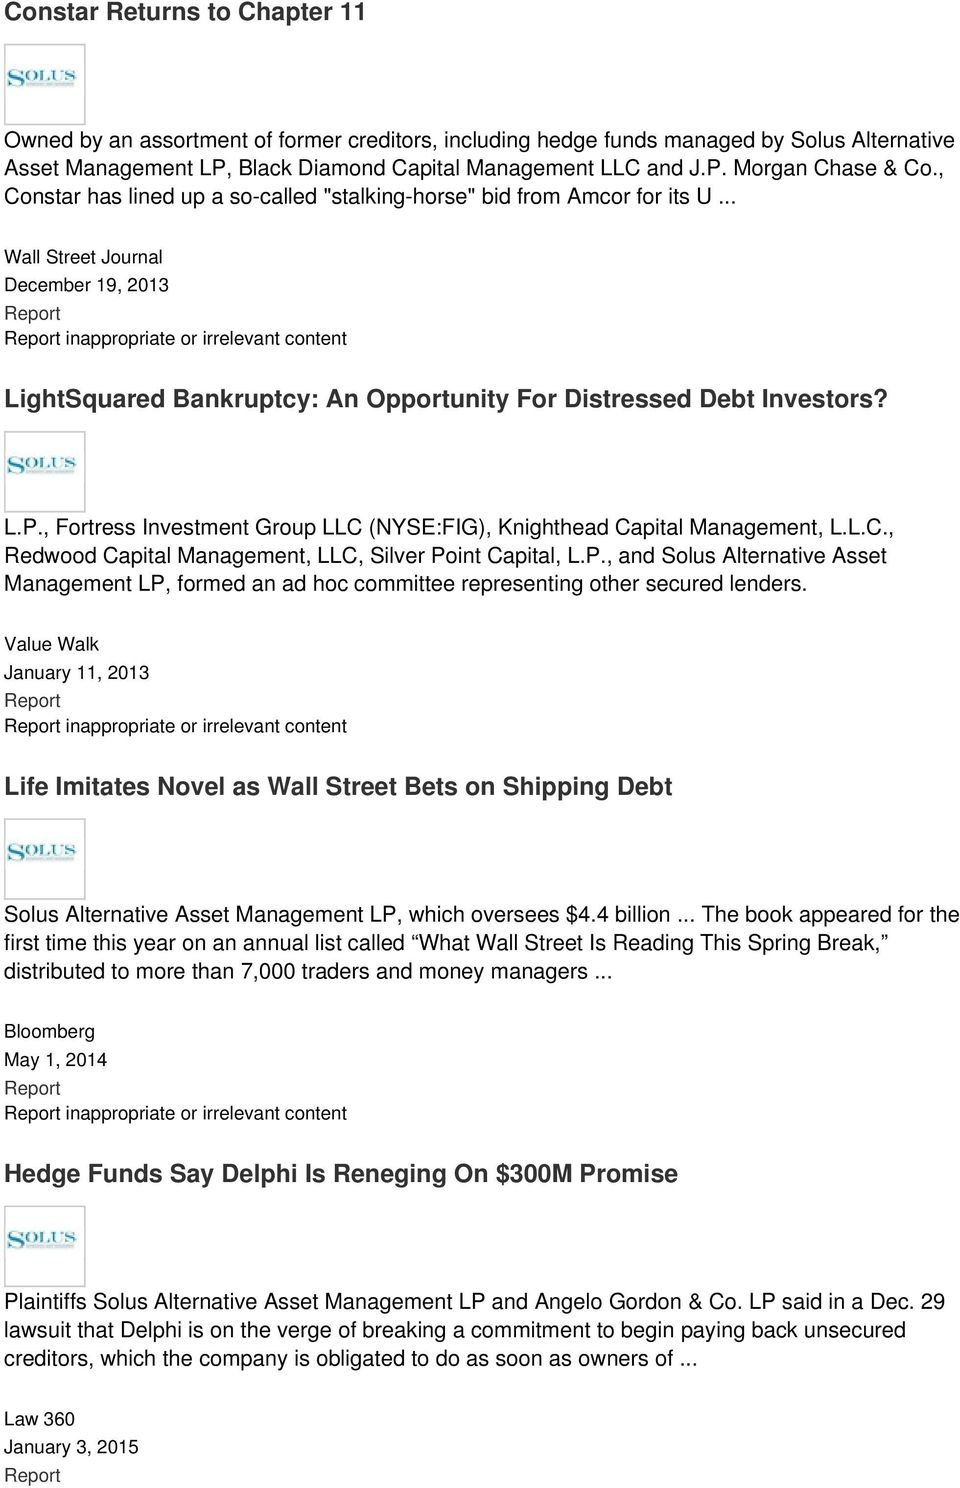 .. Wall Street Journal December 19, 2013 inappropriate or irrelevant content LightSquared Bankruptcy: An Opportunity For Distressed Debt Investors? L.P.